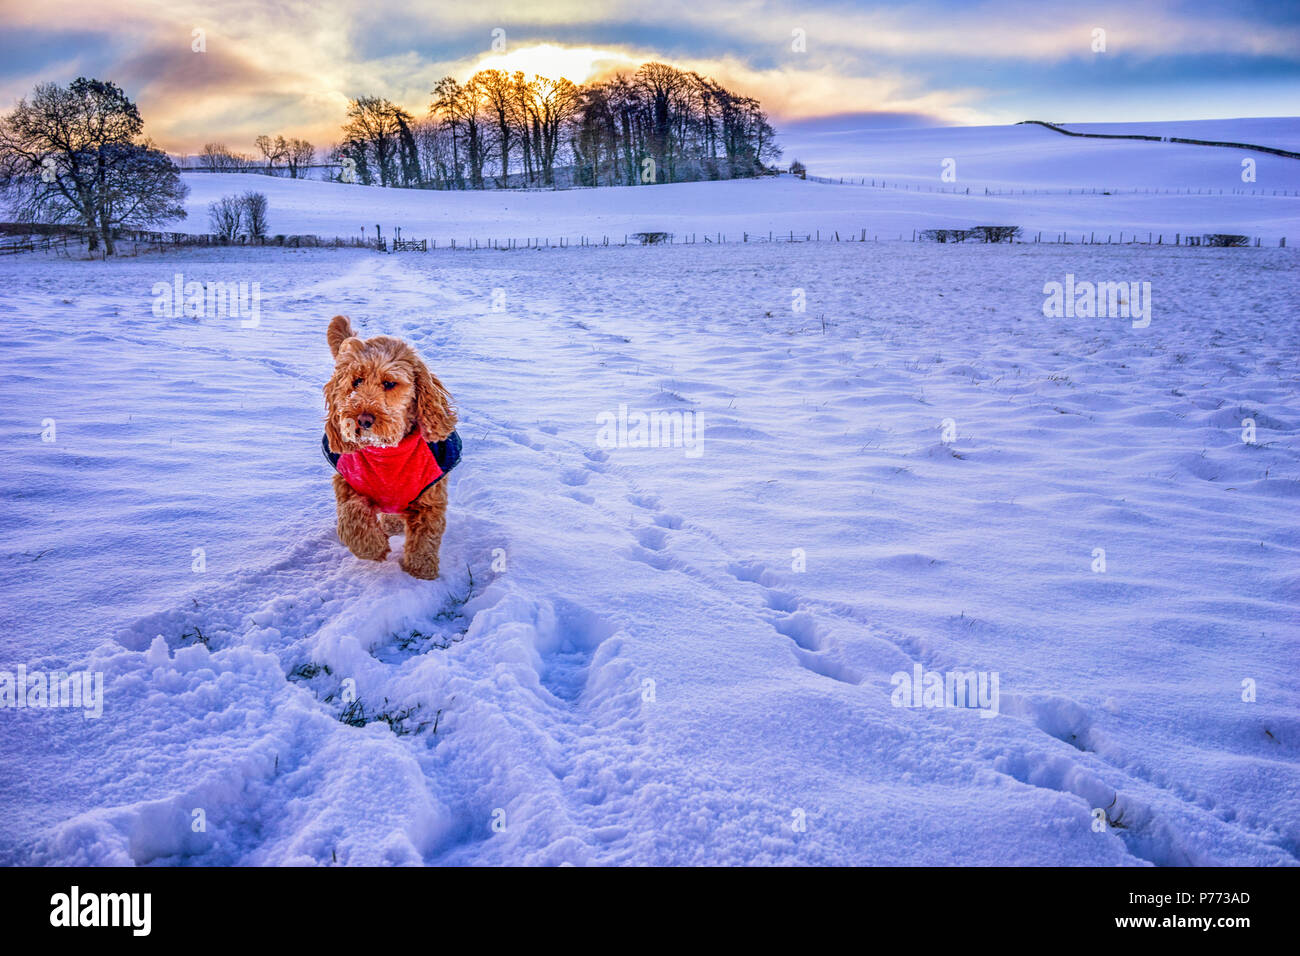 Cute dog wearing red coat walking through a snowy field - Stock Image